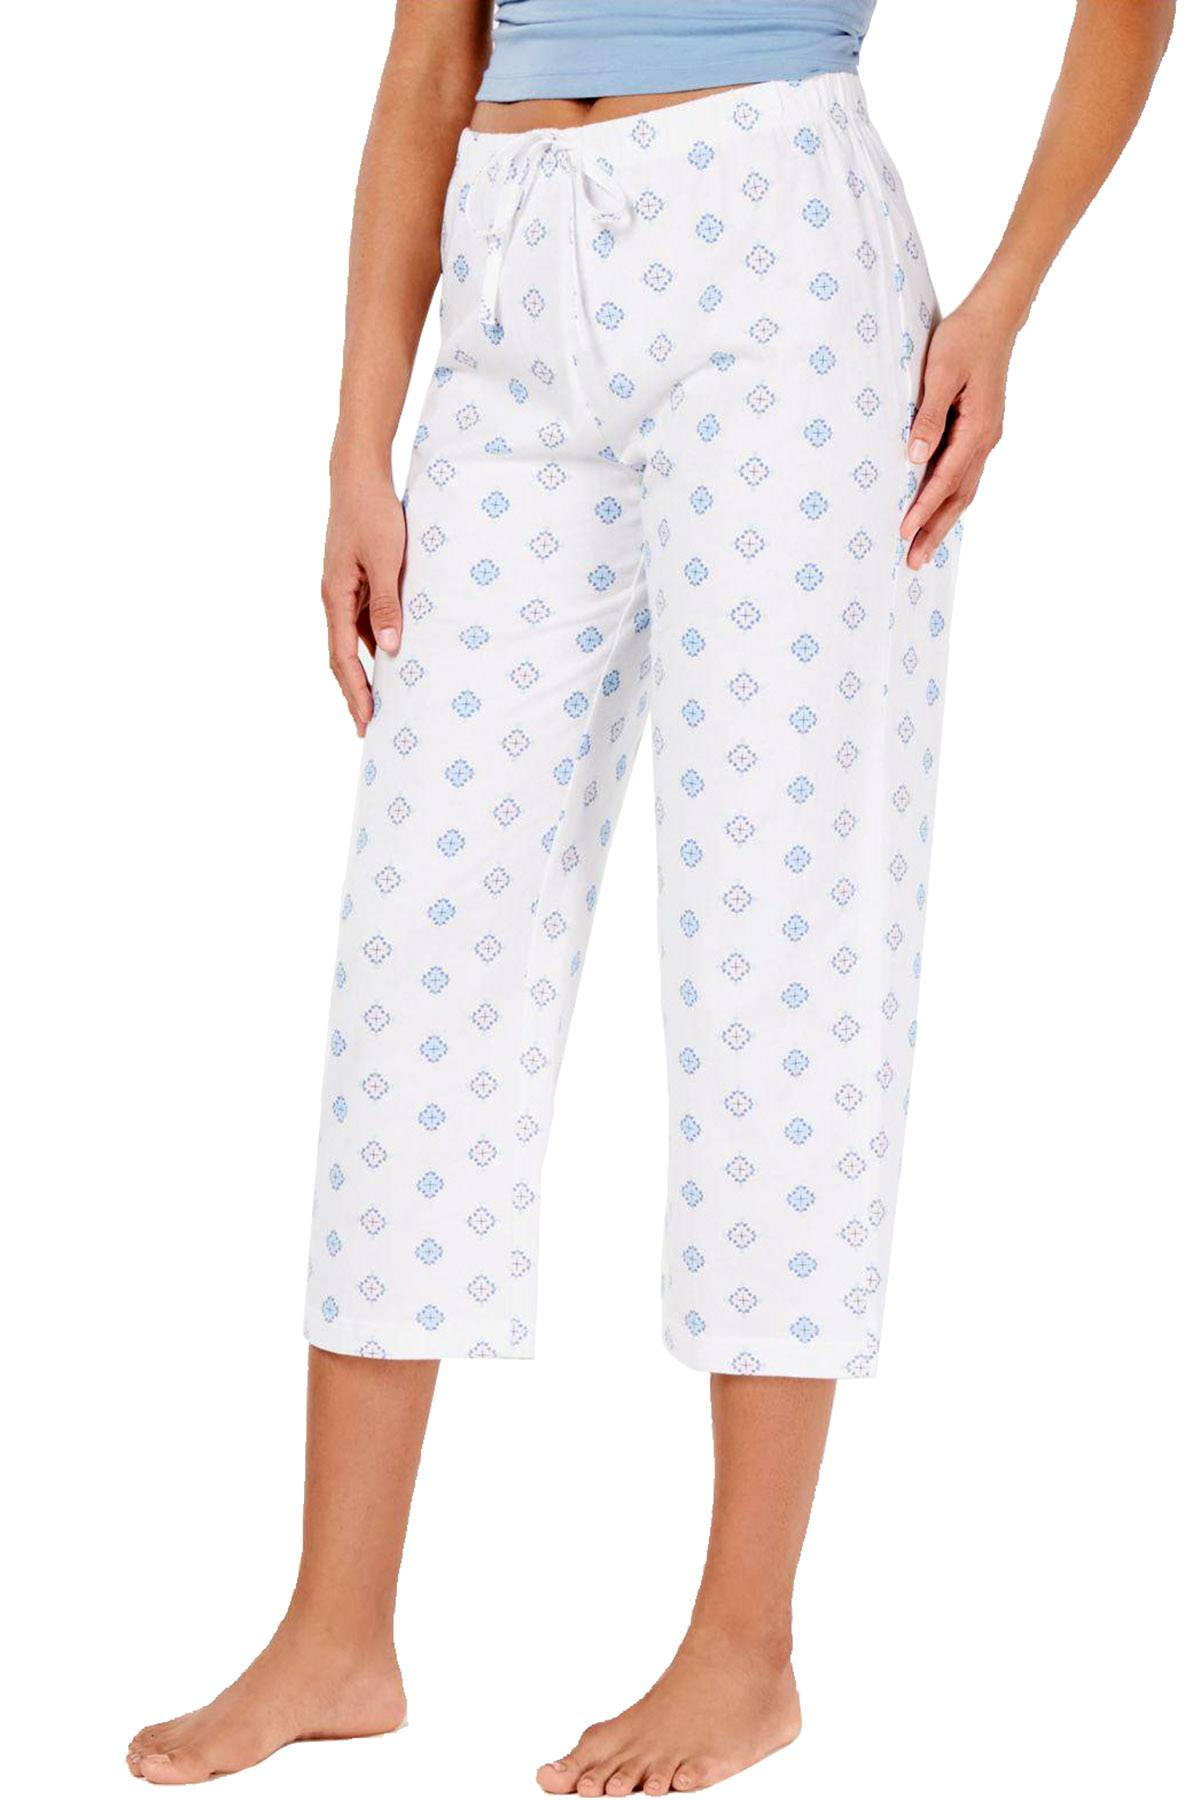 Charter Club Intimates Diamond Tile Art Printed Soft Knit Cropped Pajama Pant